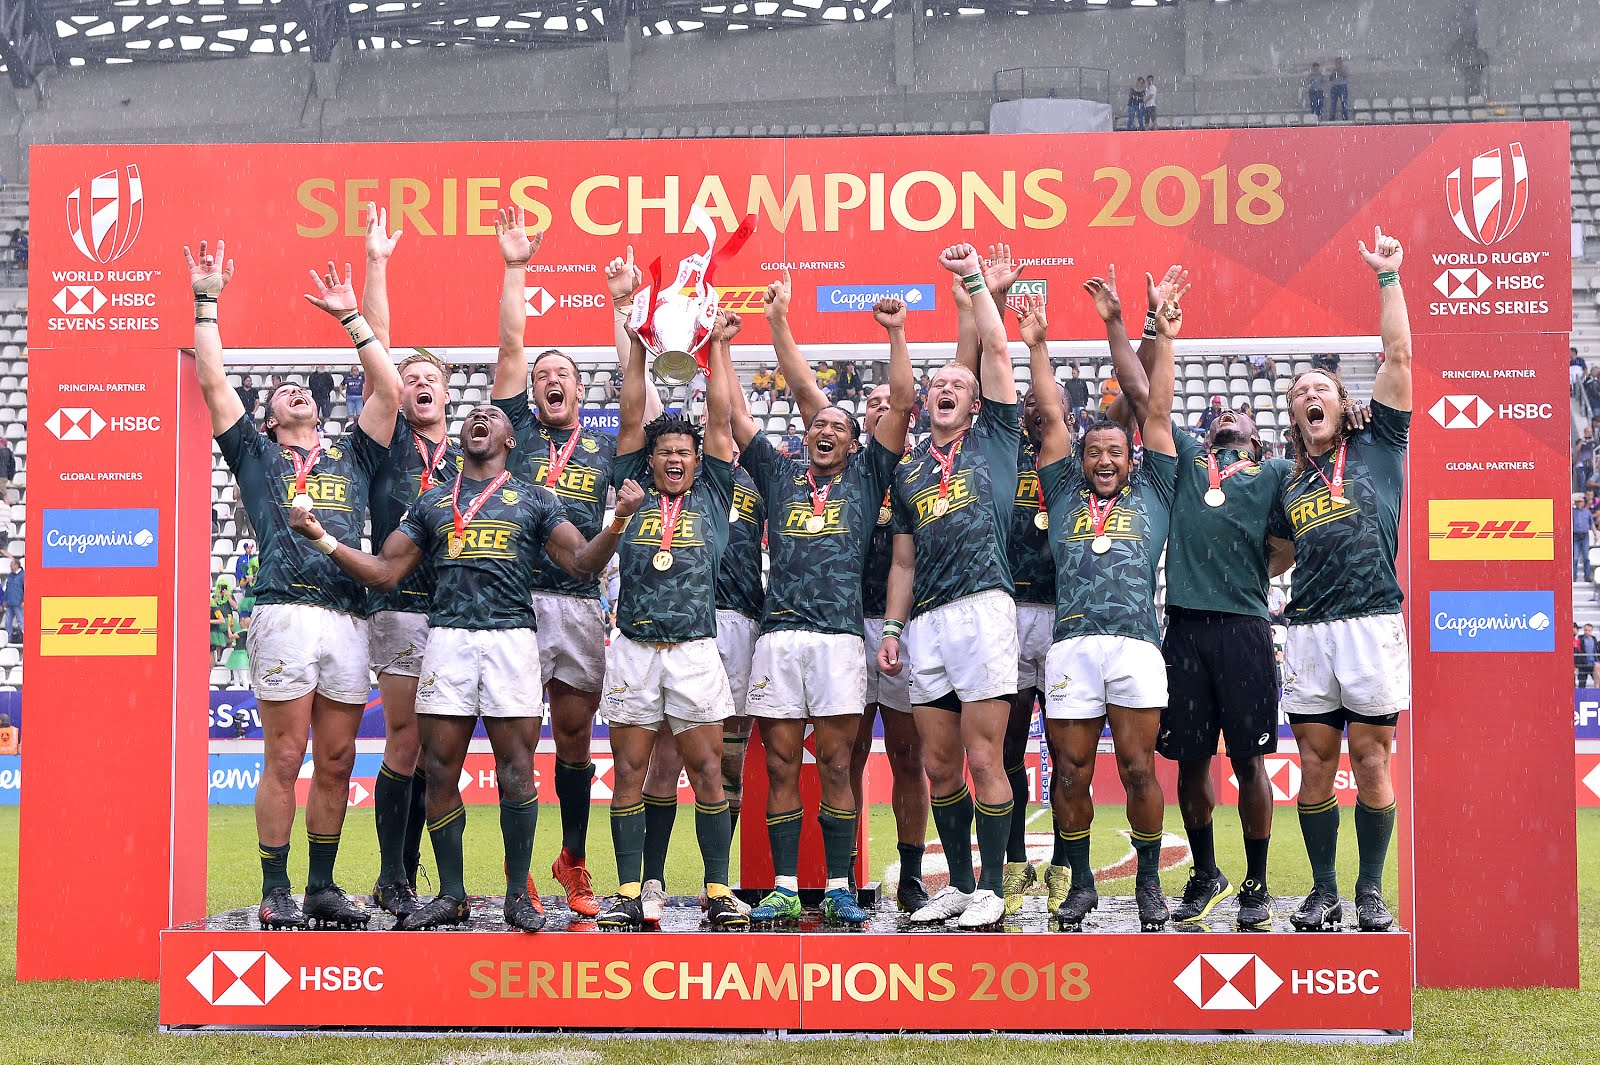 South African Sevens team winning the HSBC World Sevens Series in 2018